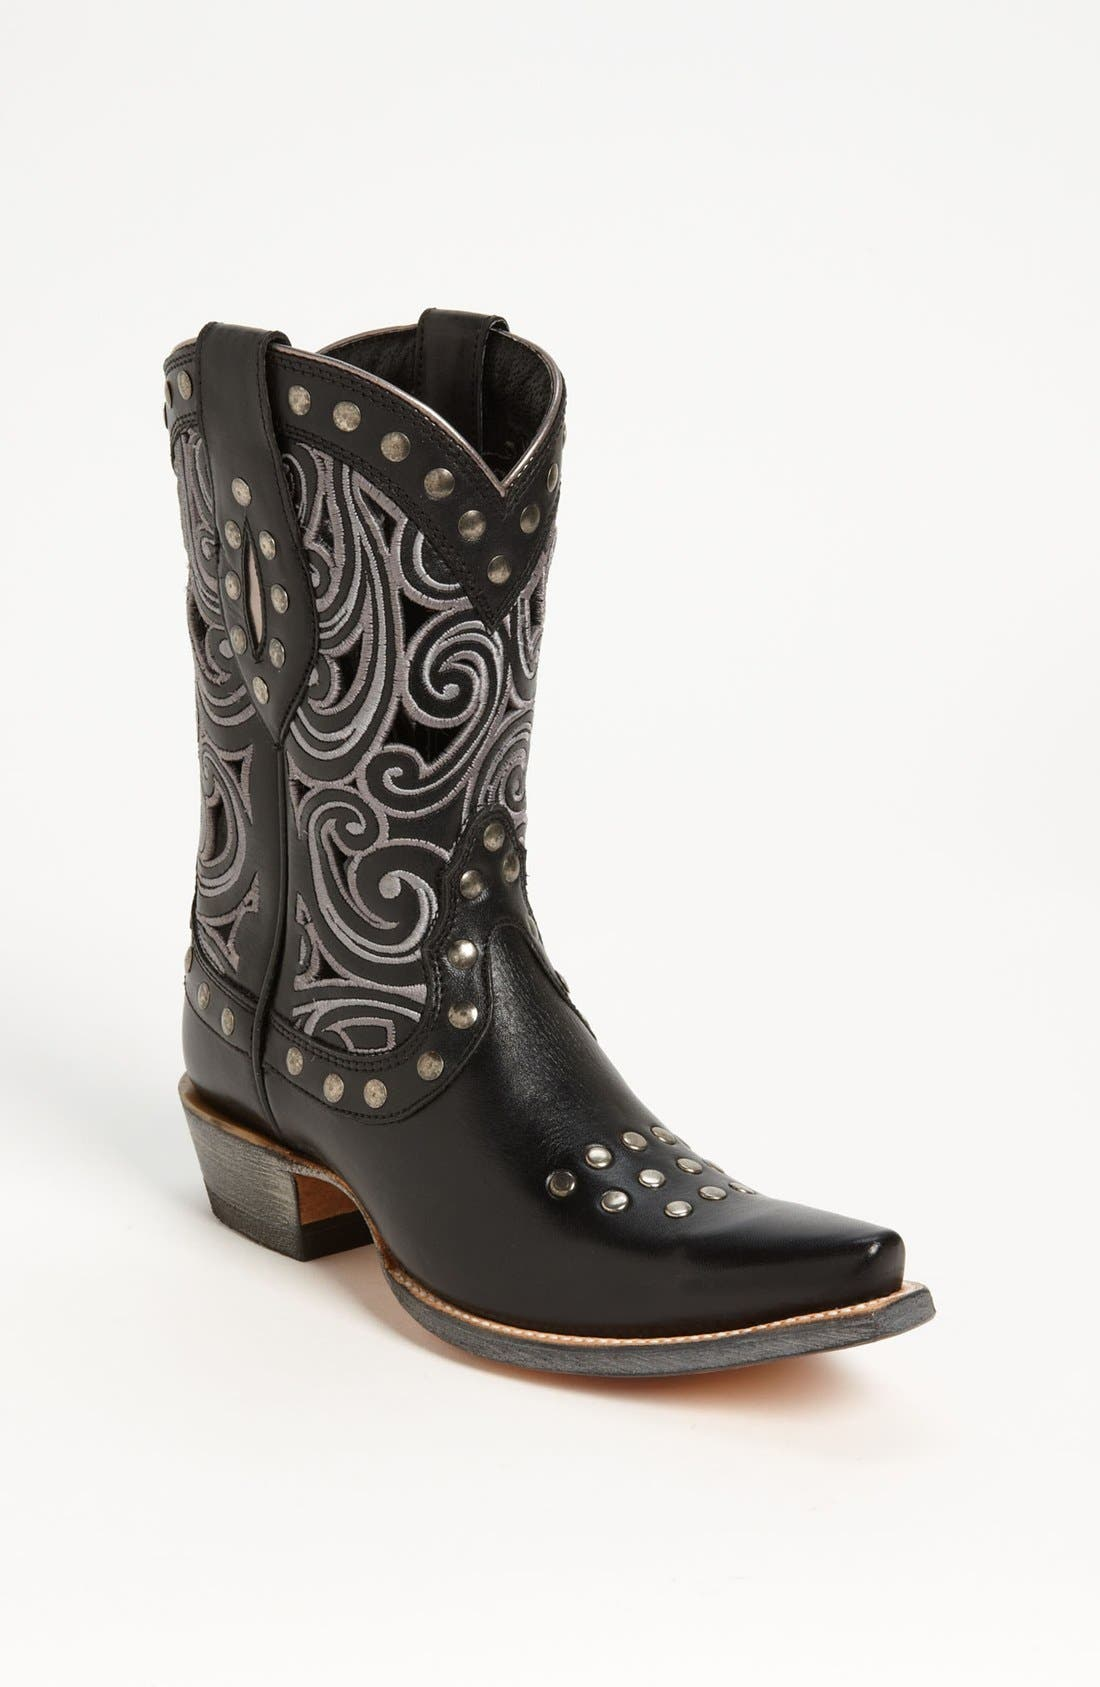 Alternate Image 1 Selected - Ariat 'Paloma' Boot